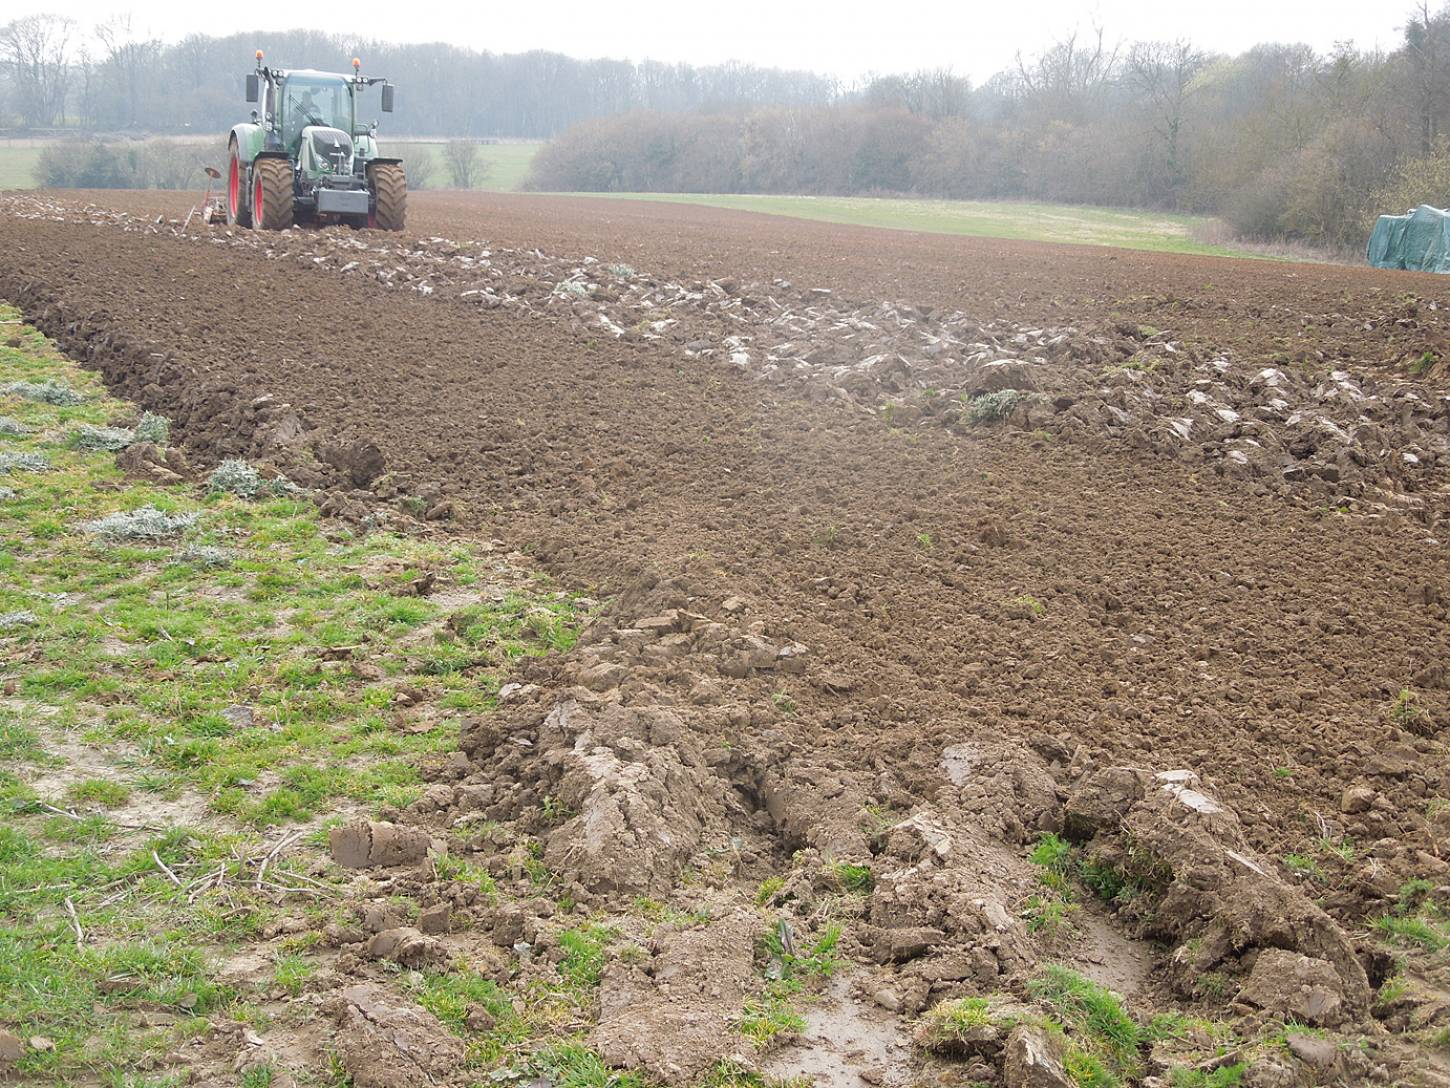 Spring sowing WoWo Farm - 4:48pm&nbsp;19<sup>th</sup>&nbsp;Mar.&nbsp;'15